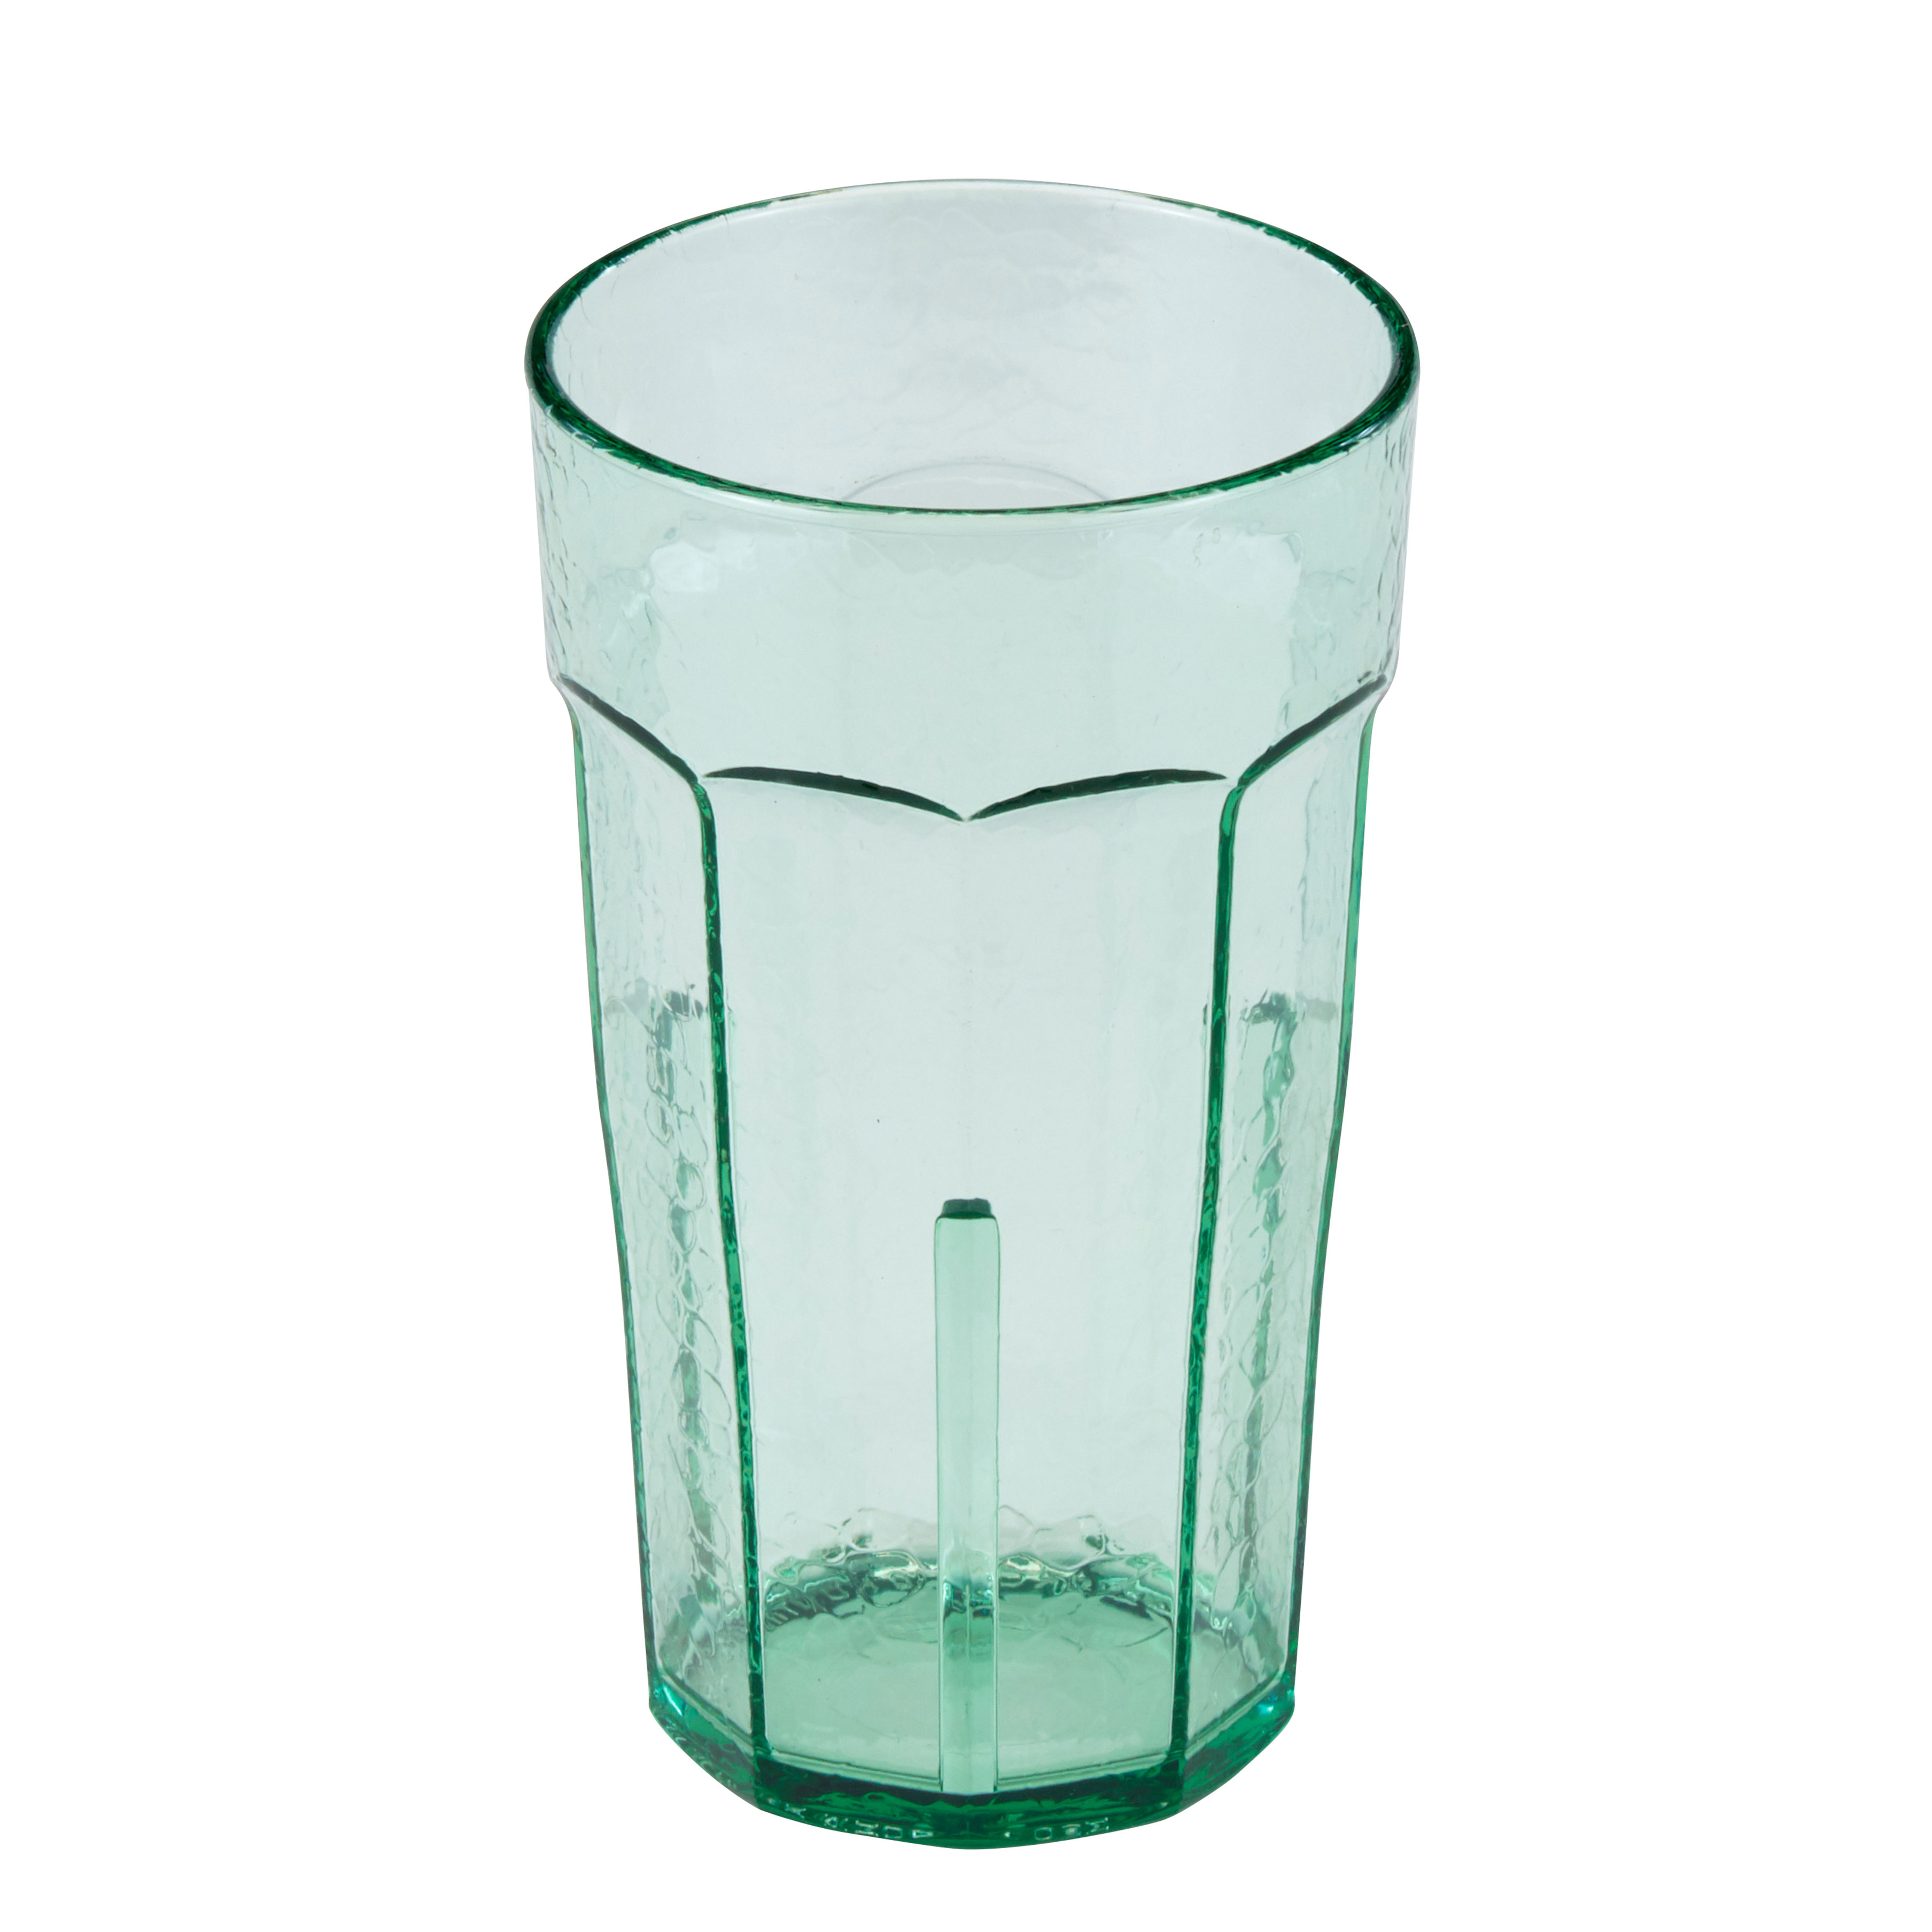 Cambro LT10427 serving/drinking glasses